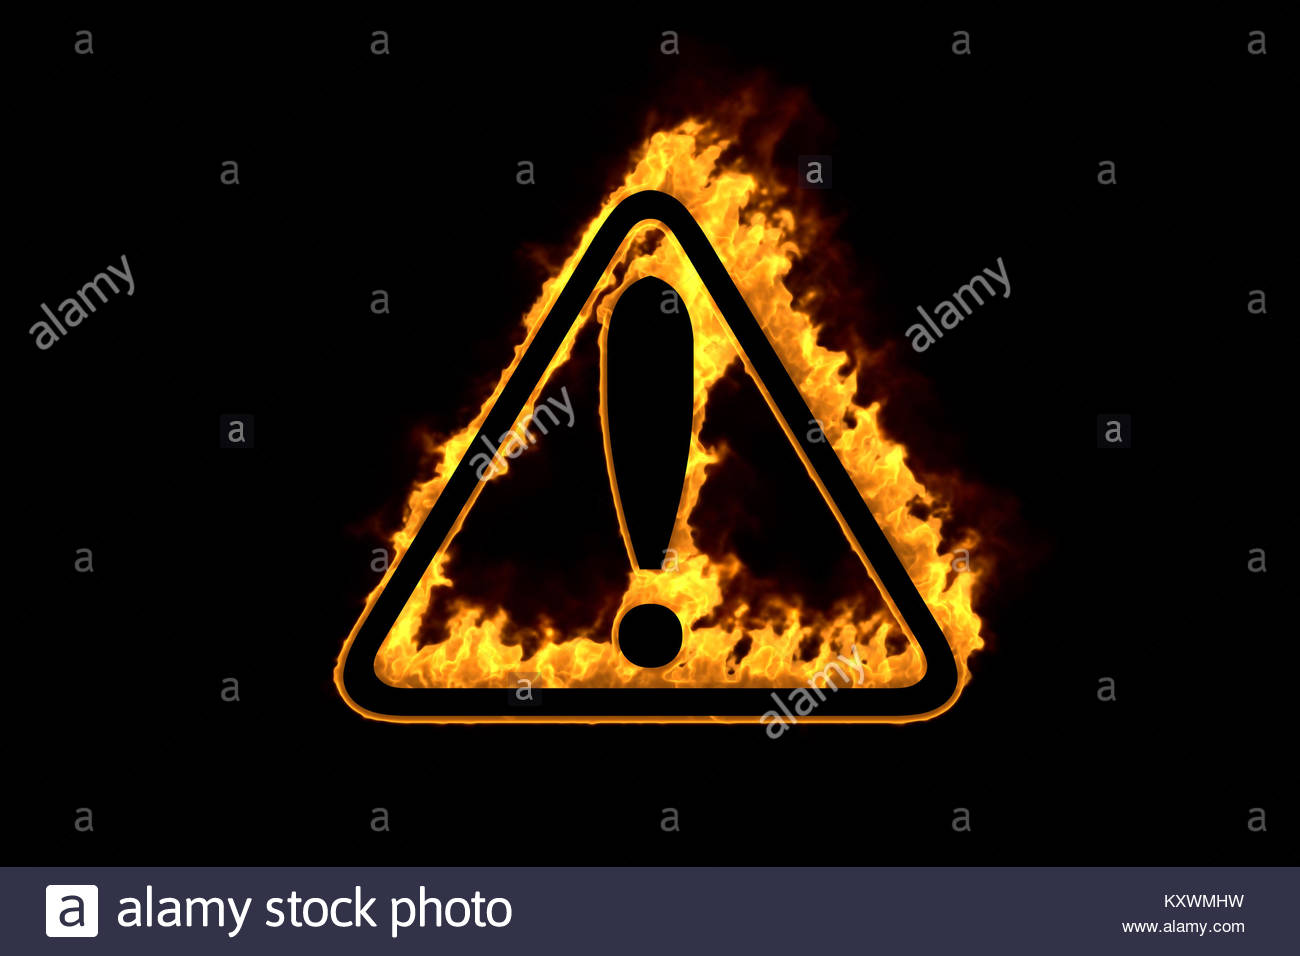 Fire hazard symbol offensive football formations diagrams fire hazard symbol isolated on black background 3d illustration fire hazard symbol isolated on black background biocorpaavc Gallery